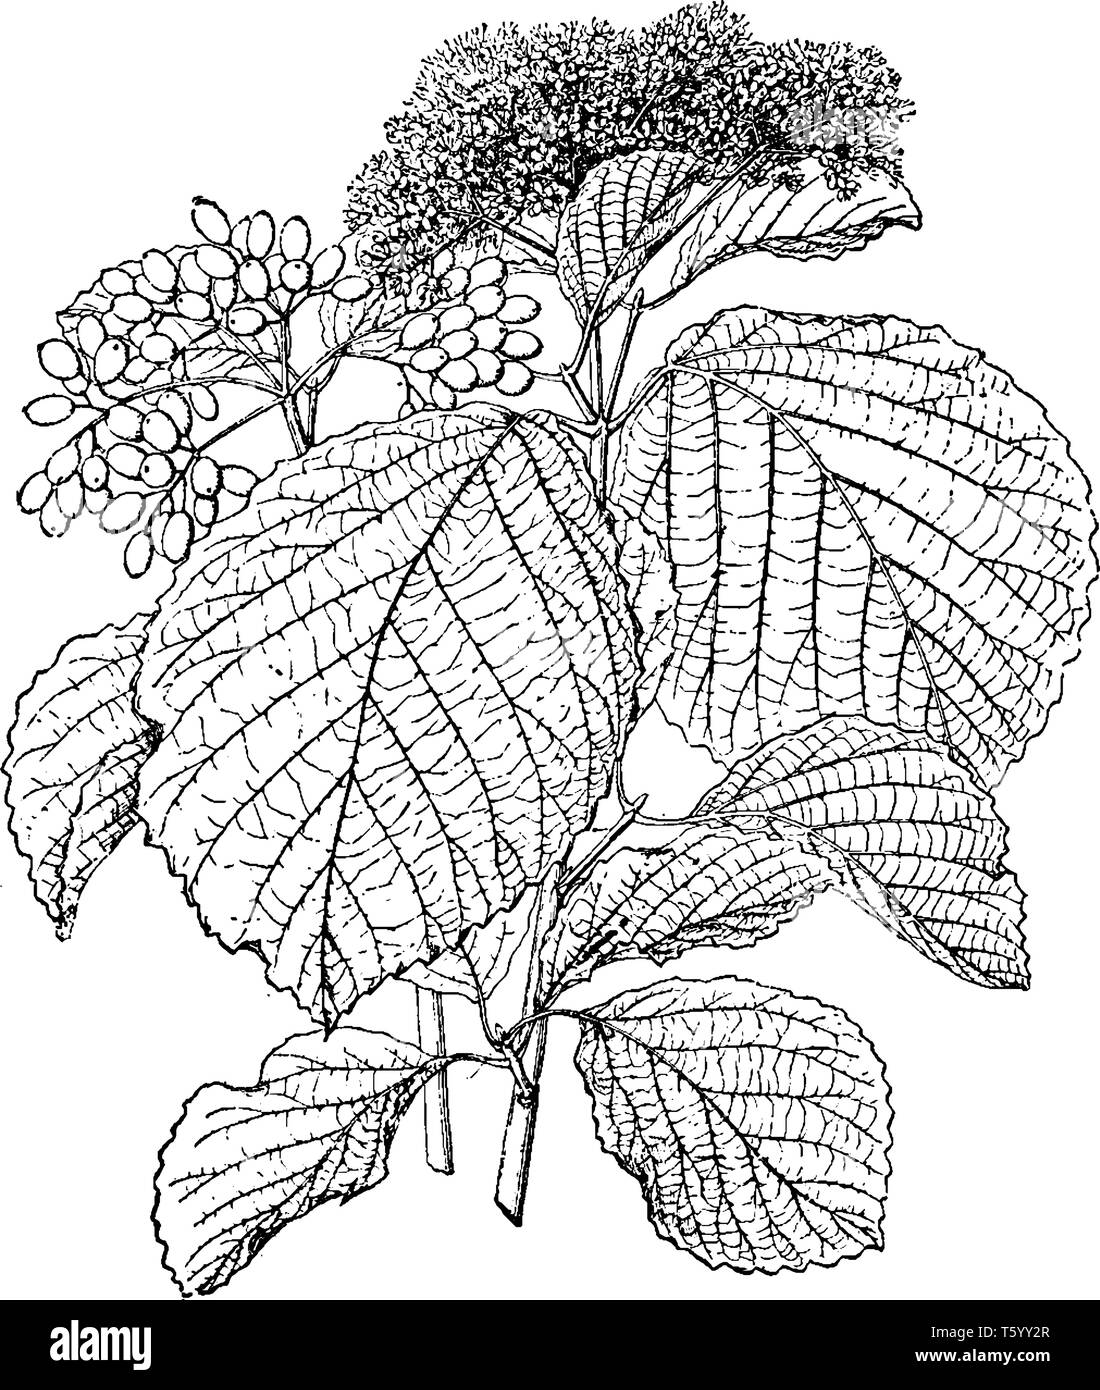 A picture is showing Viburnum Dilatatum. It is commonly known as linden arrow wood. It is native to Eastern Asia. The leaves have toothed margins. Flo - Stock Vector